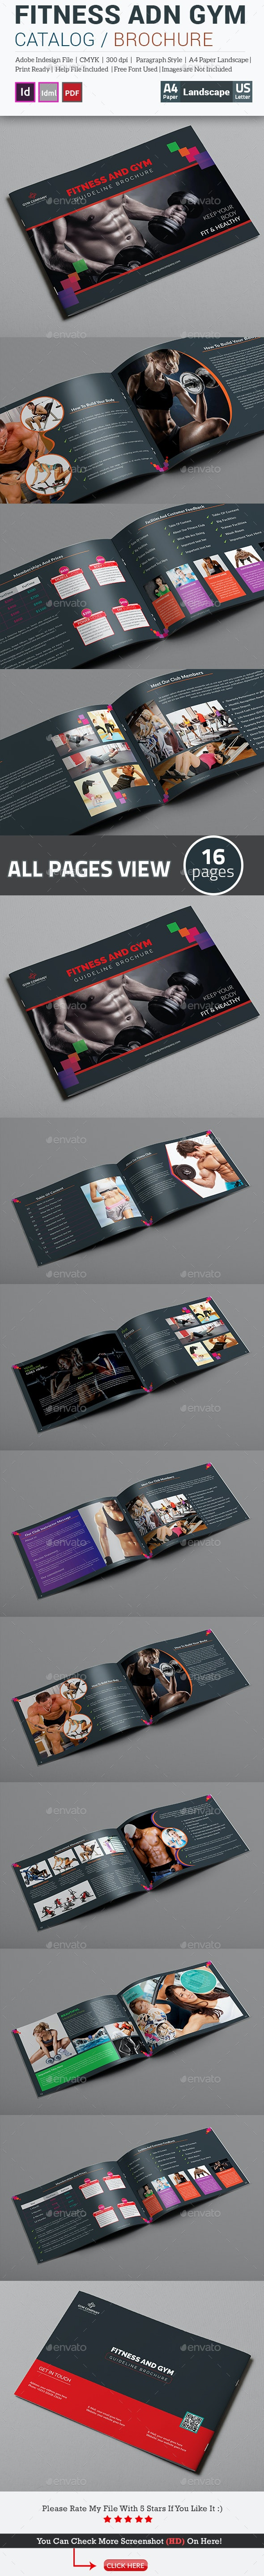 Fitness and Gym Guideline Brochure Template - Catalogs Brochures